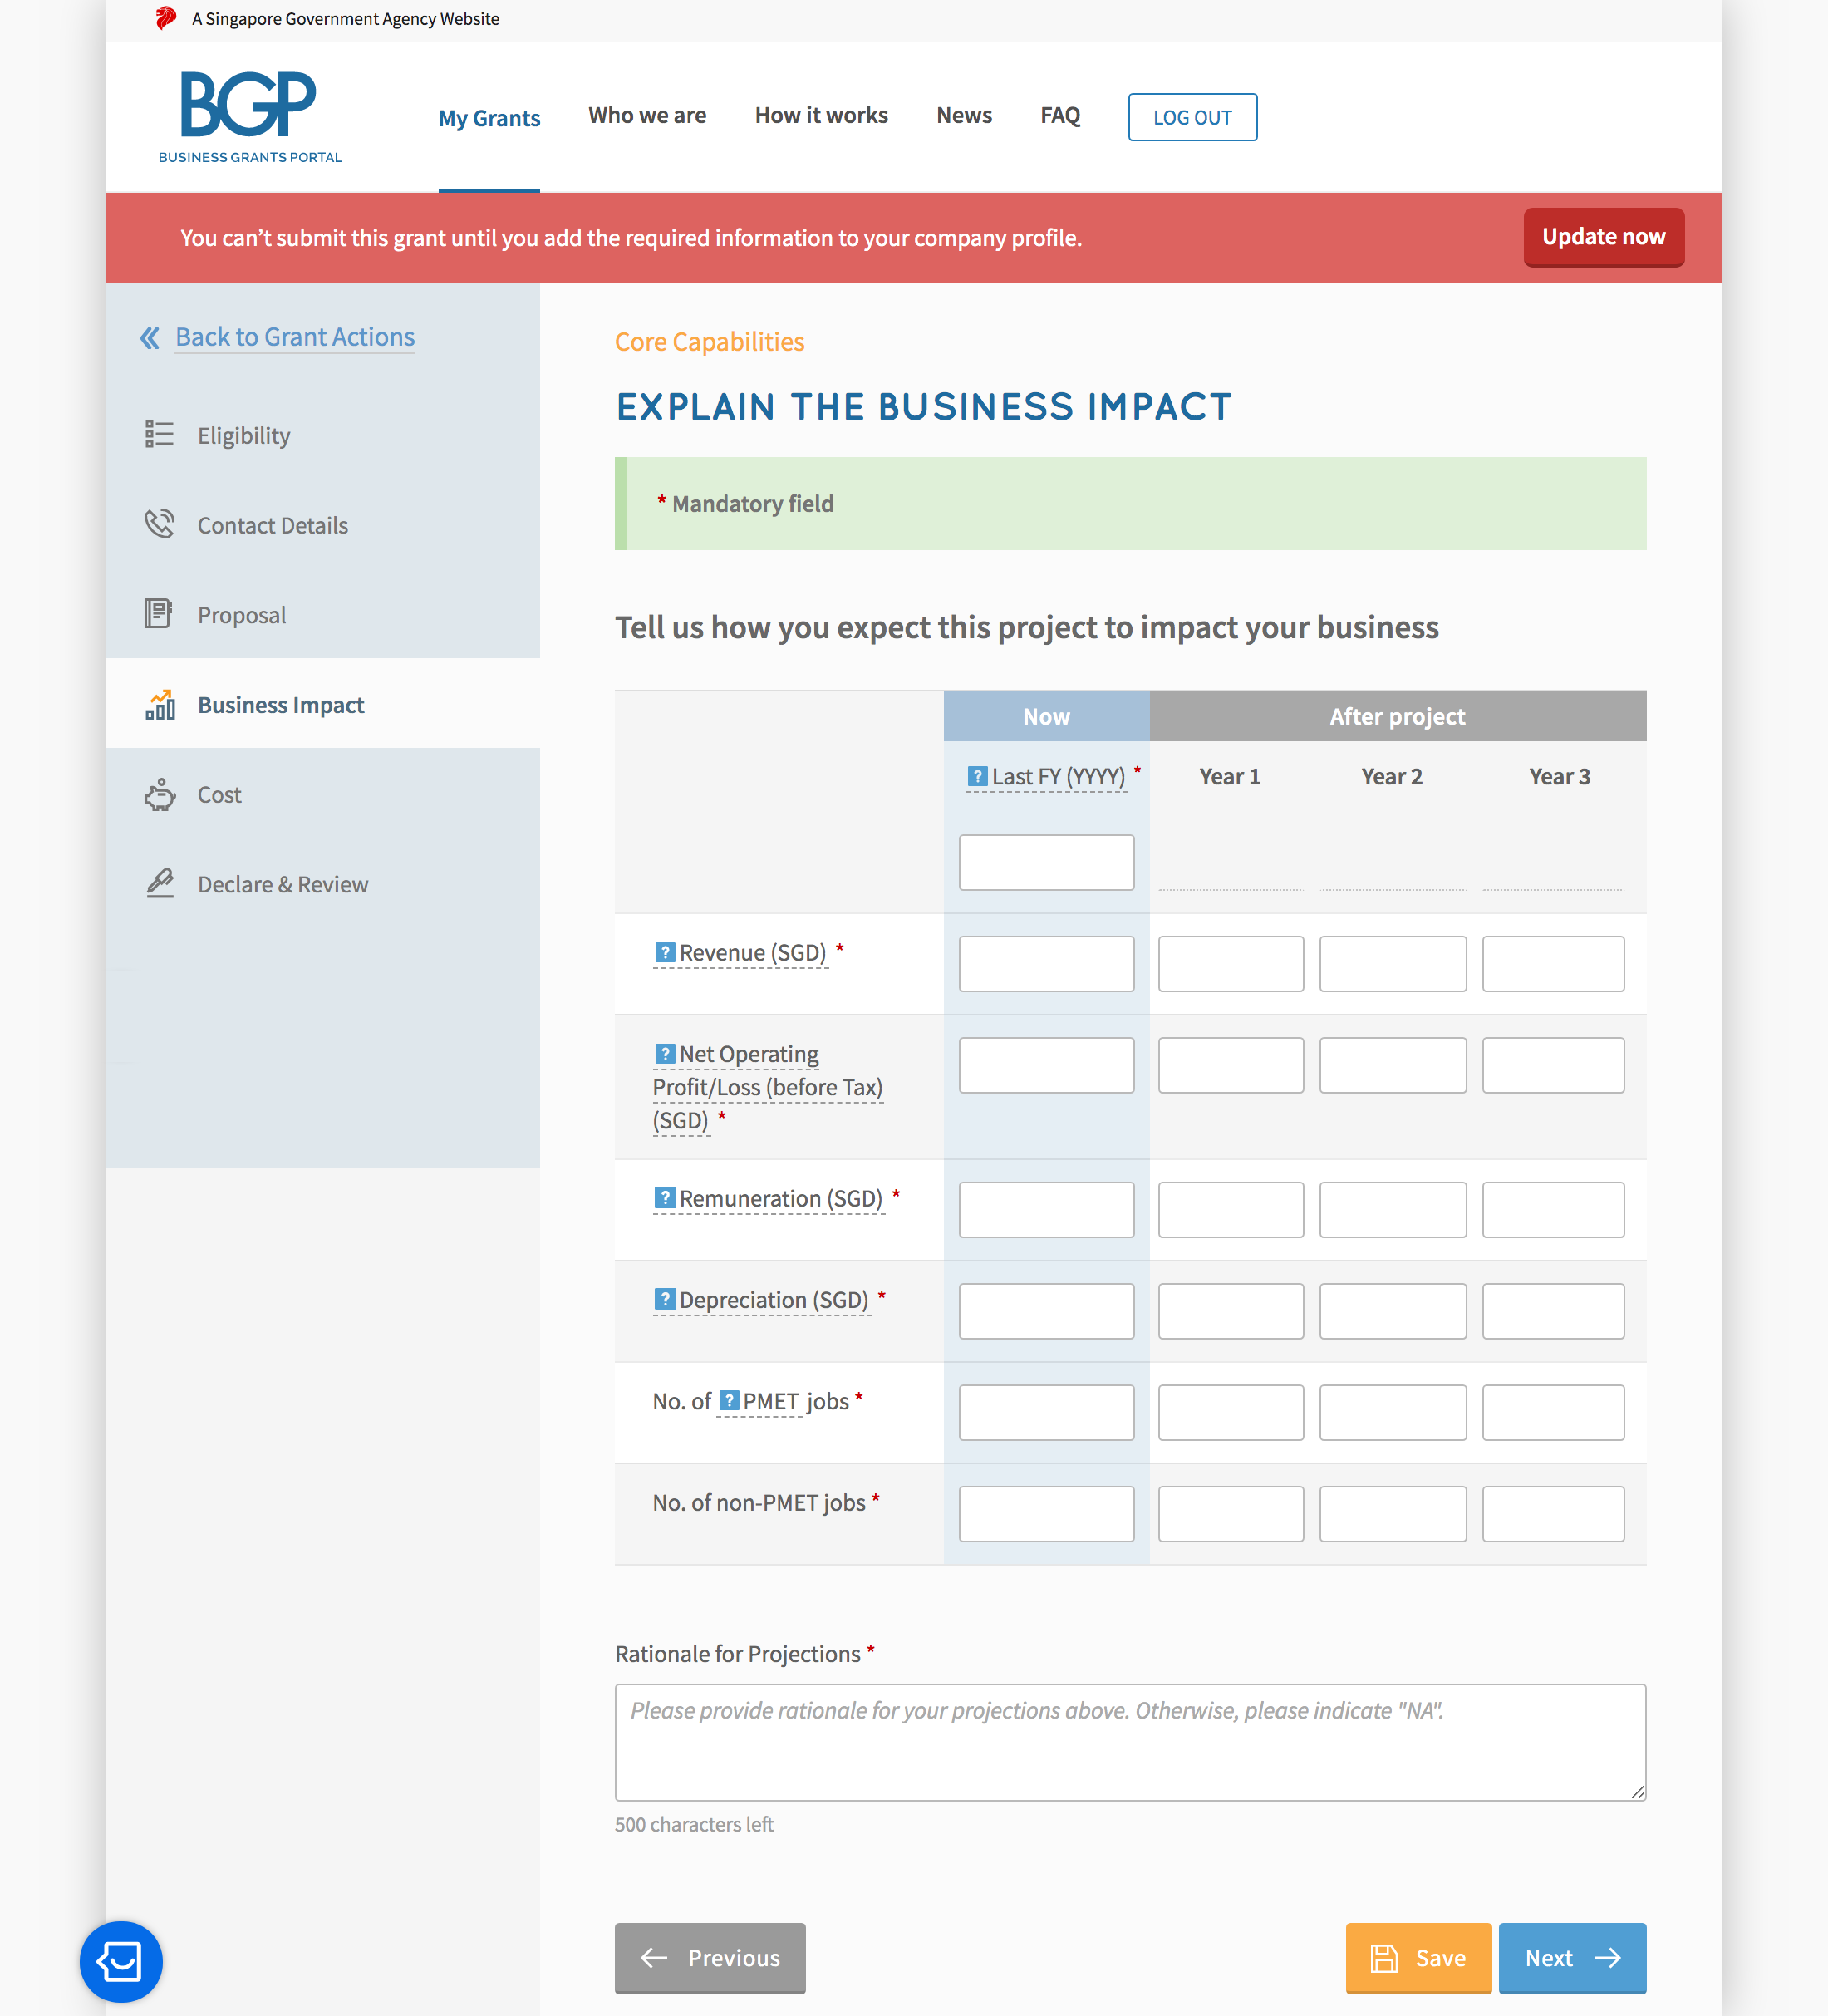 businessgrants-portal-edg-walkthrough11-2019